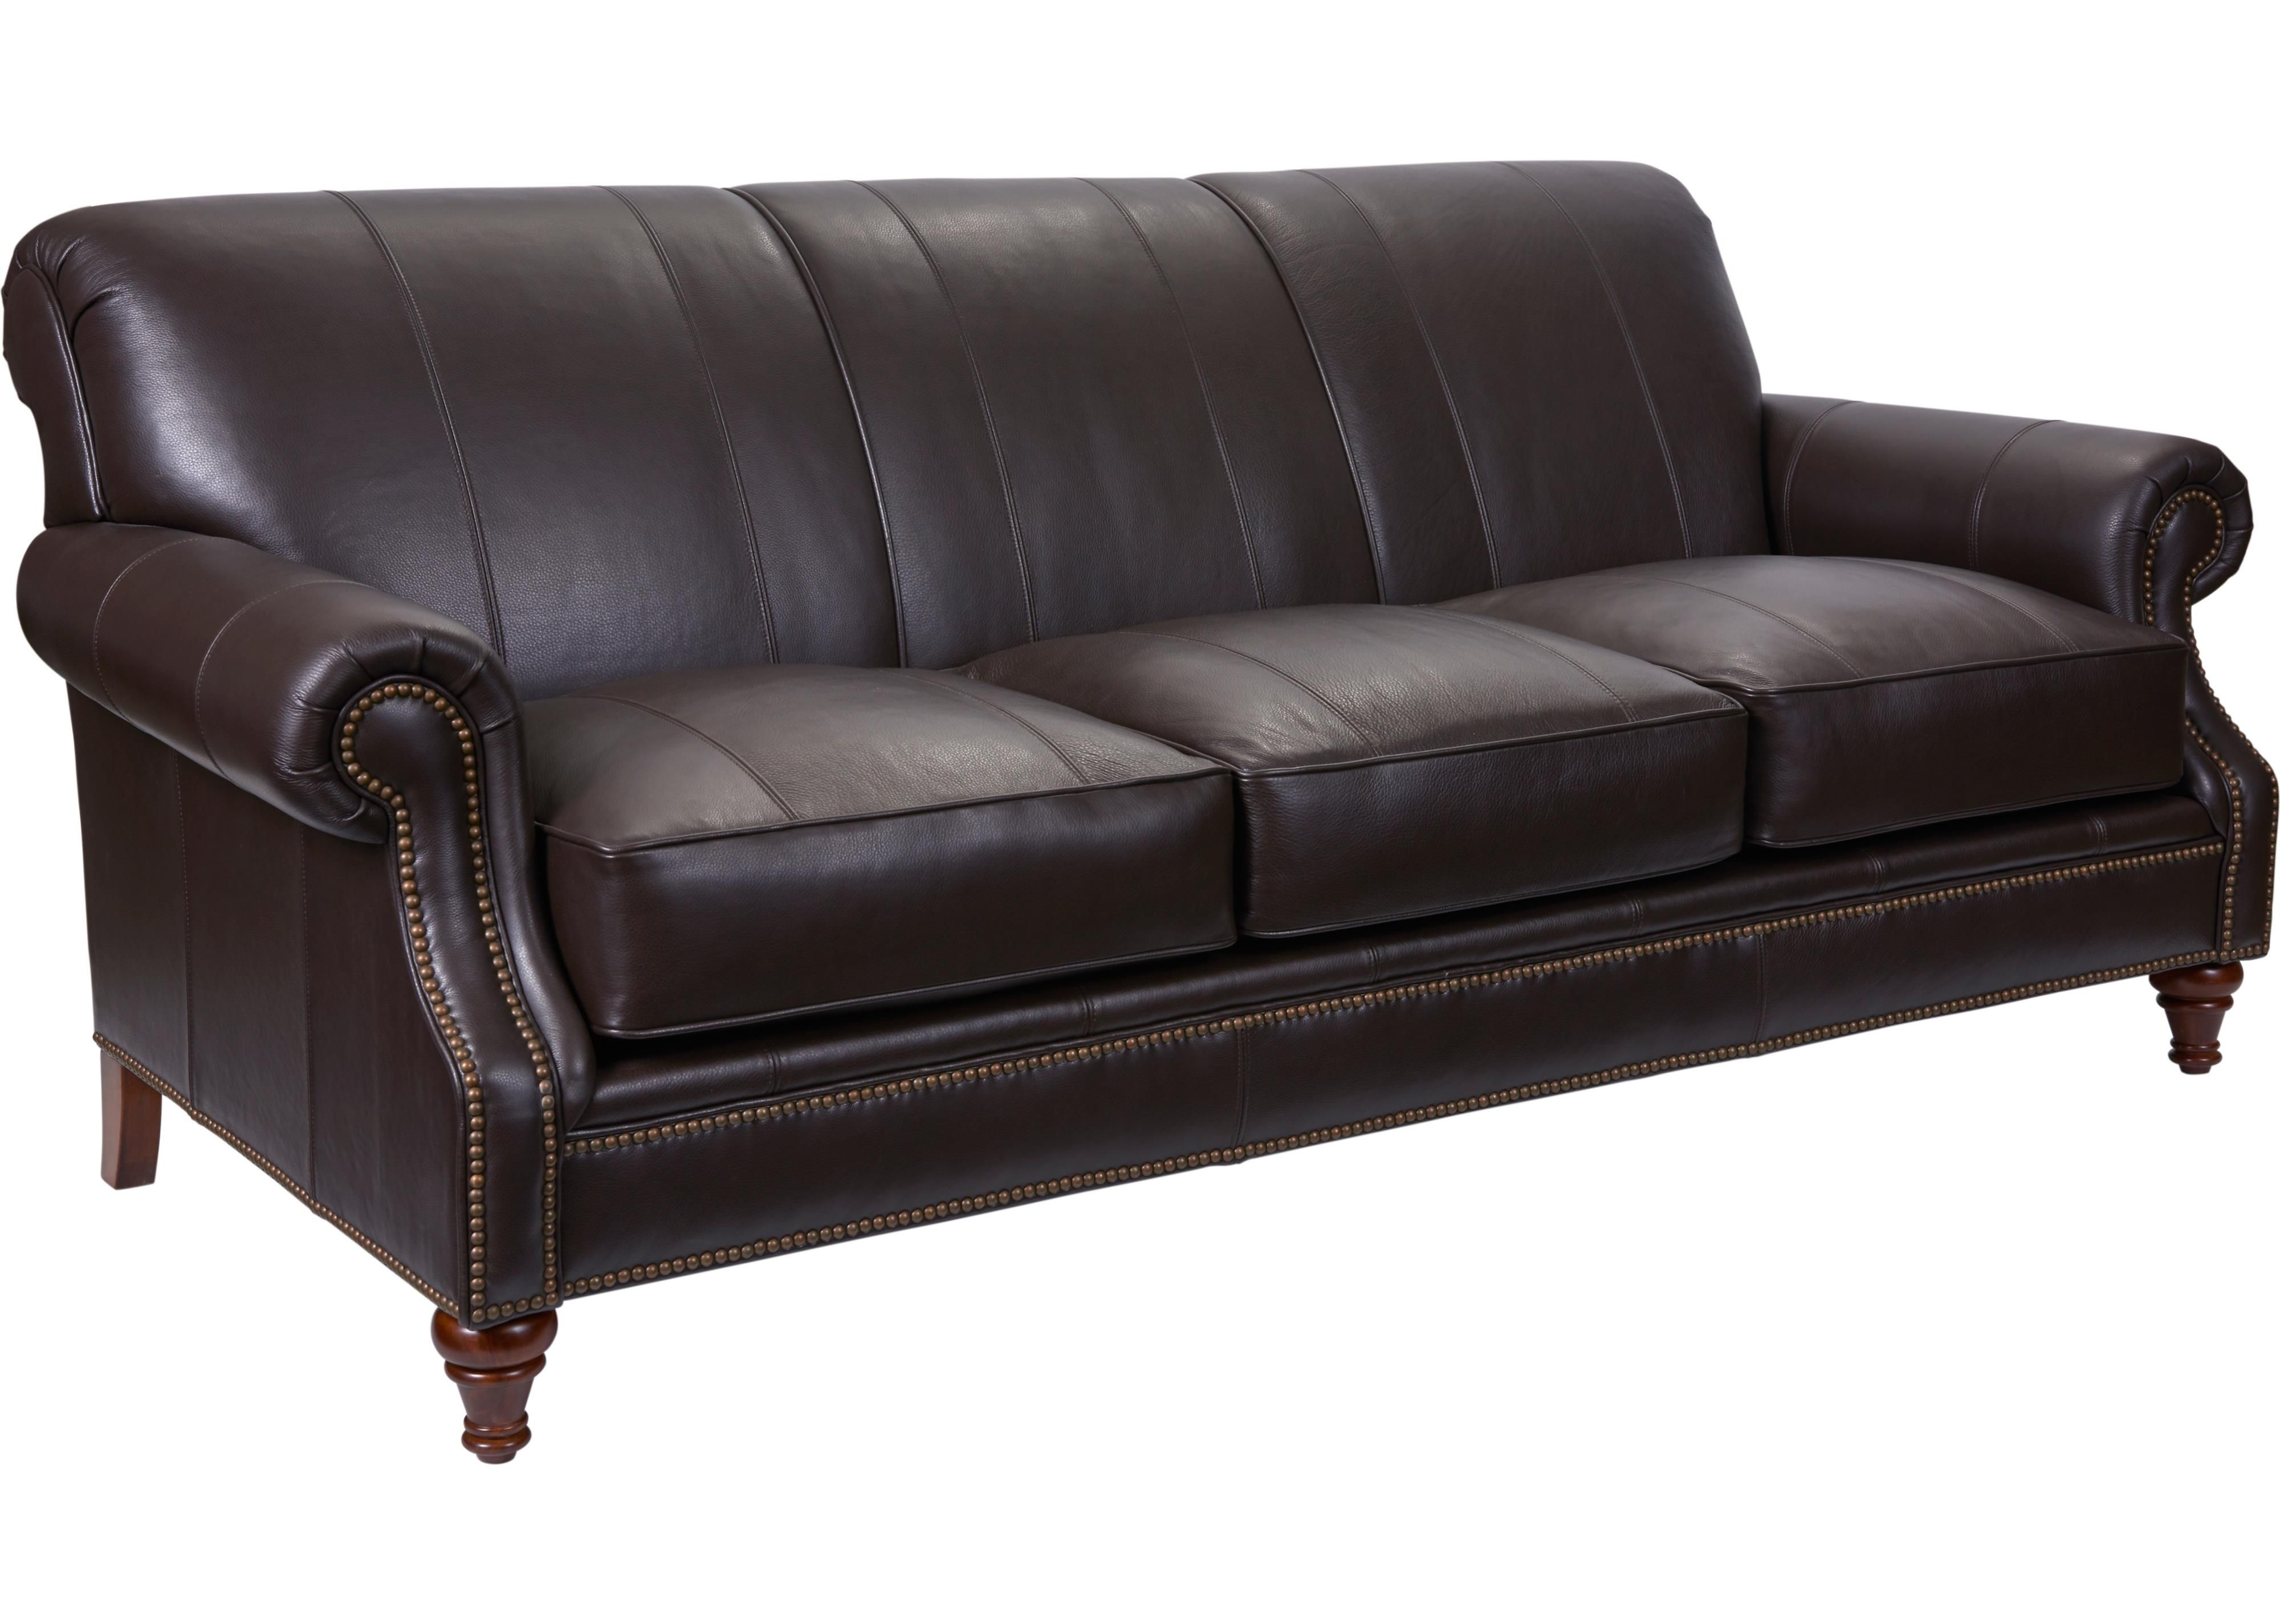 Fabulous Windsor Sofa By Broyhill Furniture House Ideas Broyhill Cjindustries Chair Design For Home Cjindustriesco